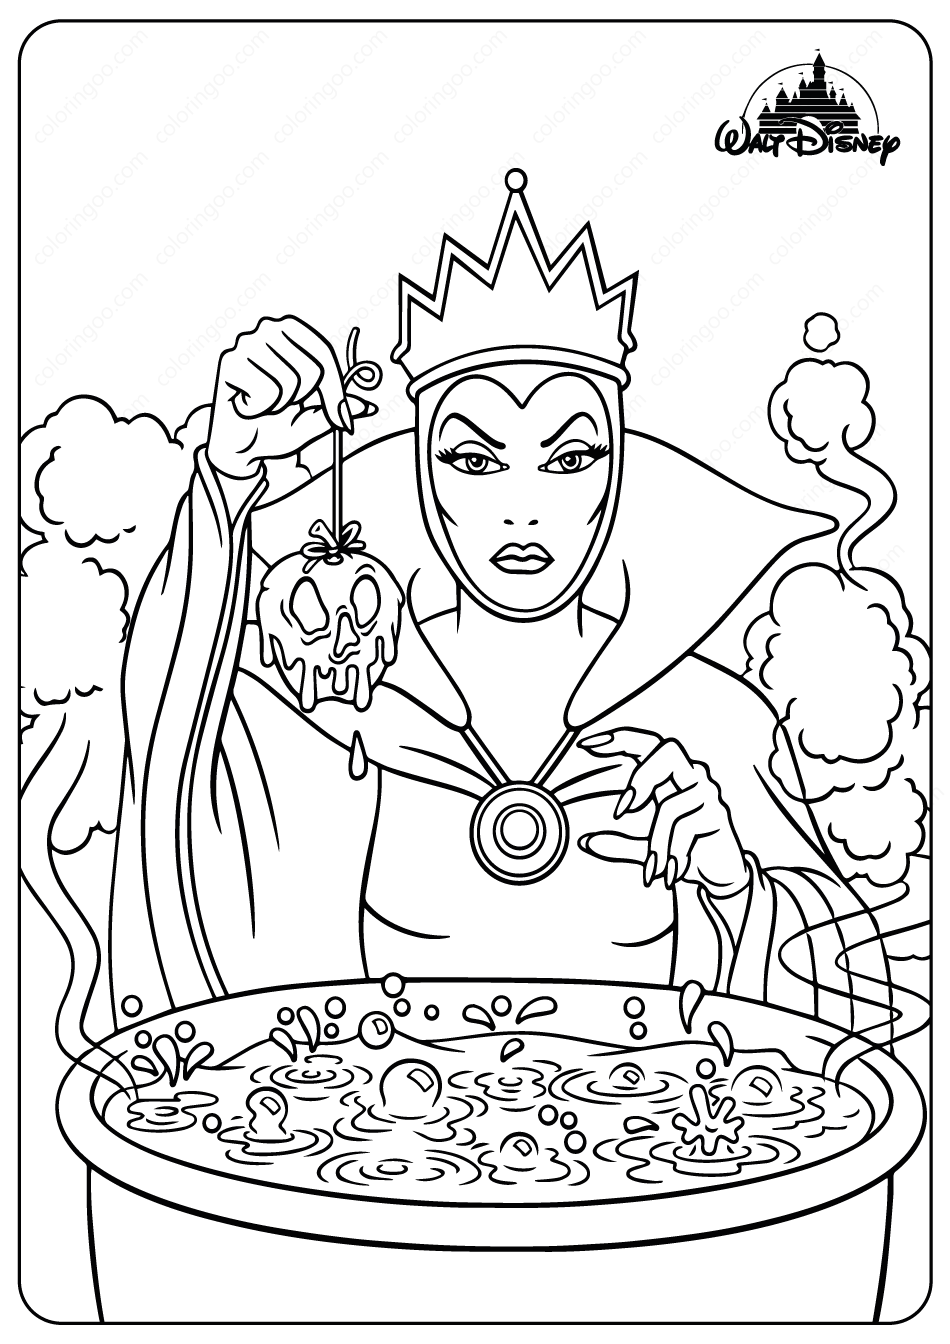 The Evil Queen Coloring Pages Disney Coloring Sheets Disney Coloring Pages Cartoon Coloring Pages